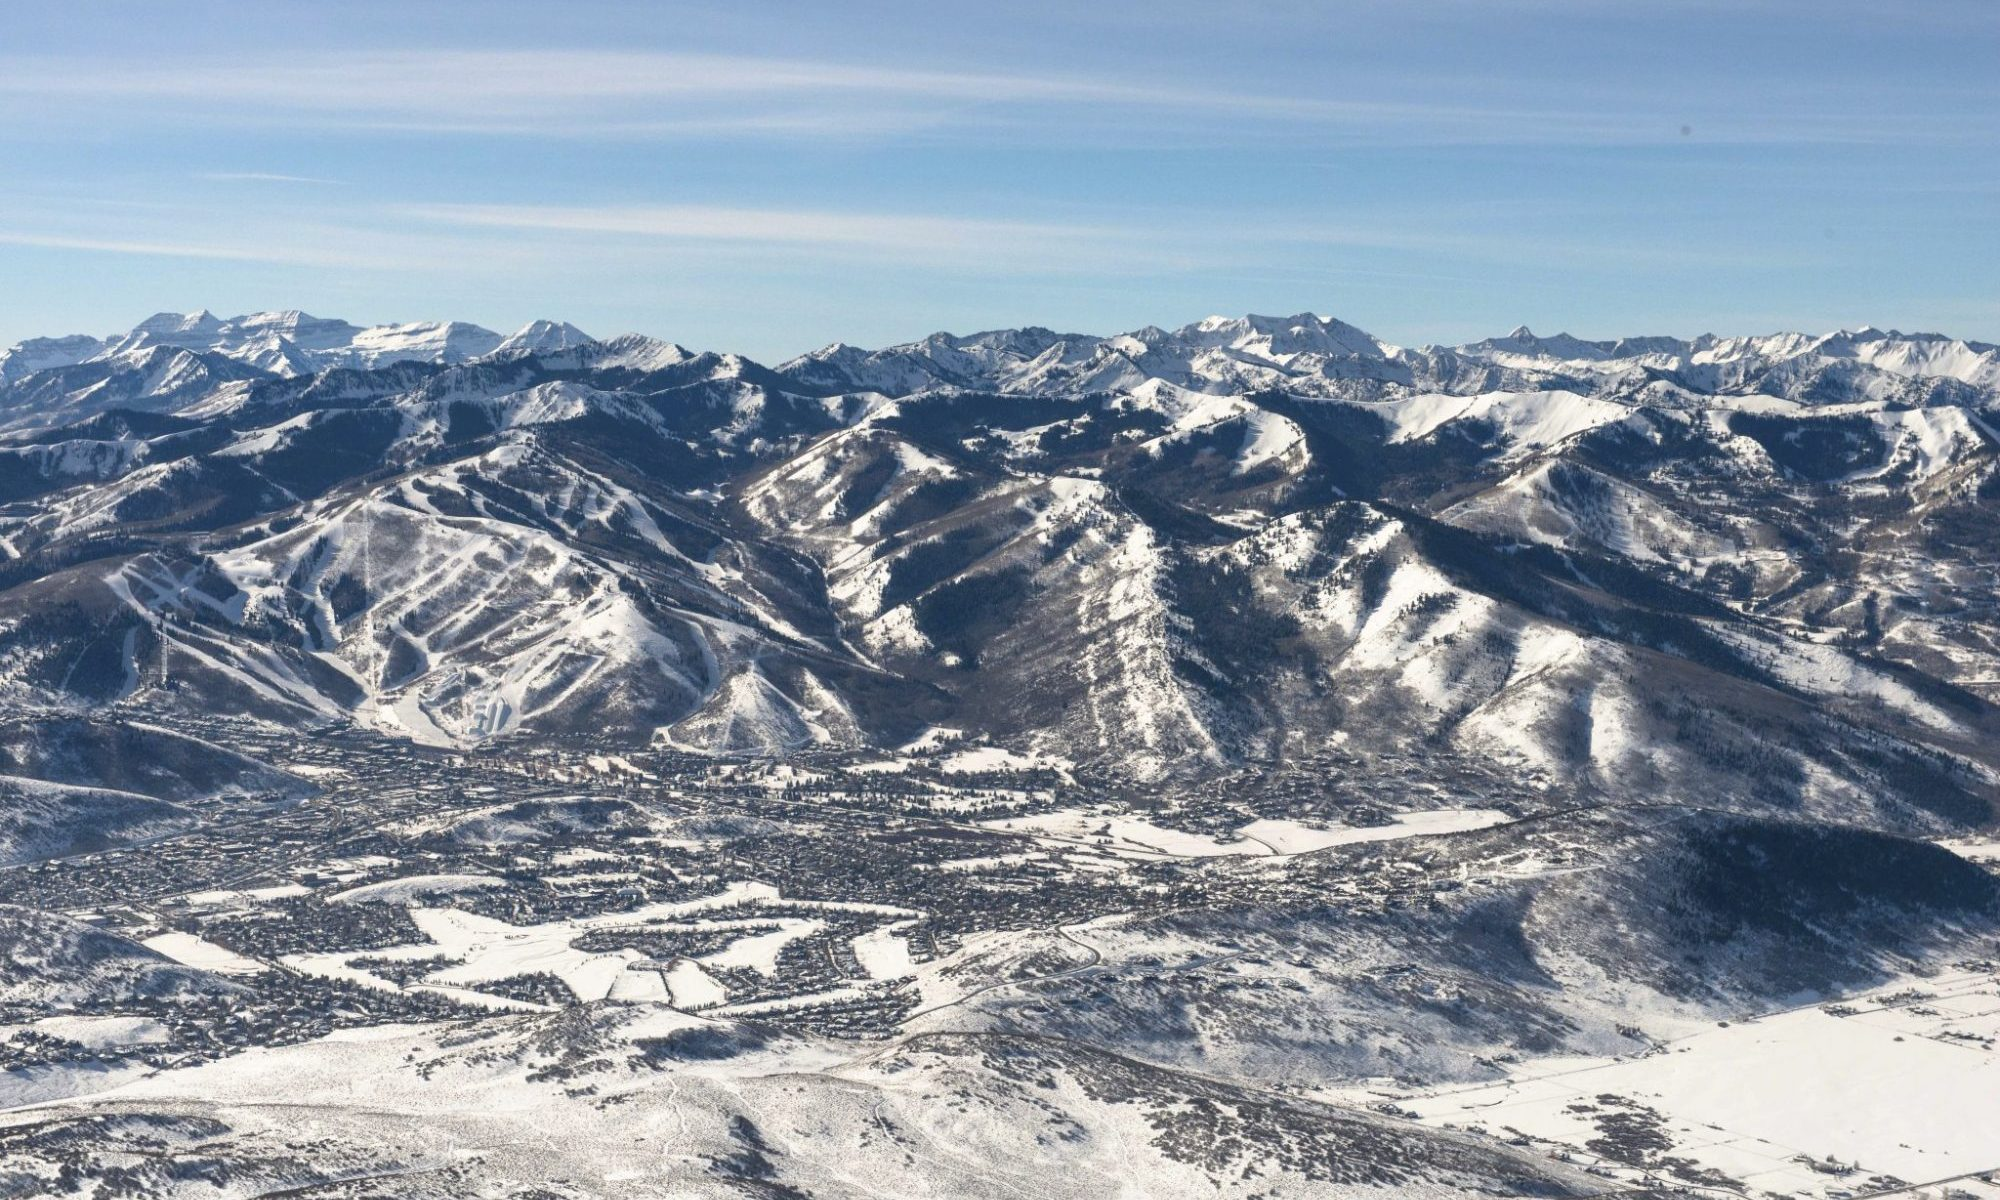 Park City Town. Vail Resorts Announces Pending Sale of Park City Mountain Base Area Site for Mixed-Use Project Development.